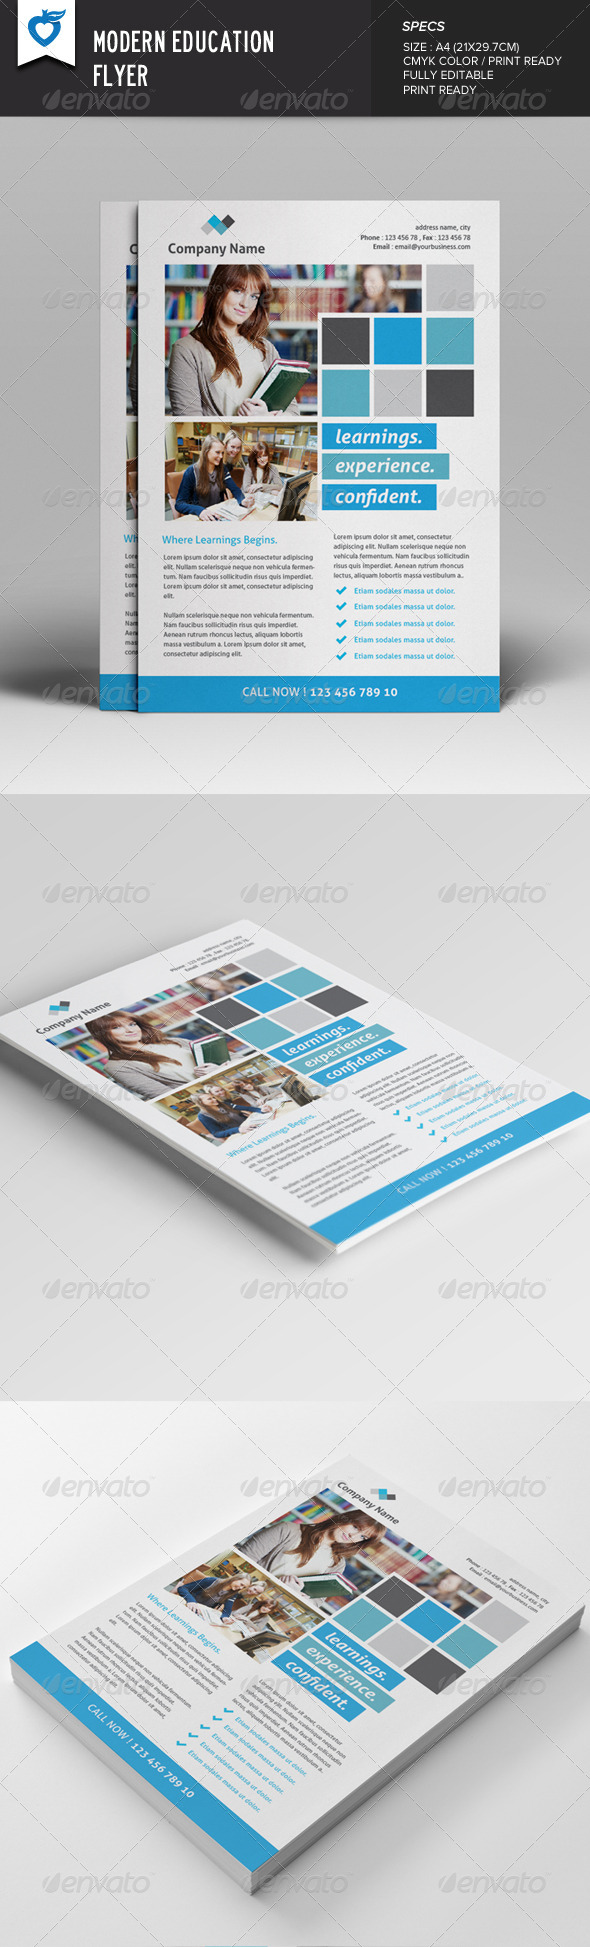 GraphicRiver Modern Education Flyer 8048621